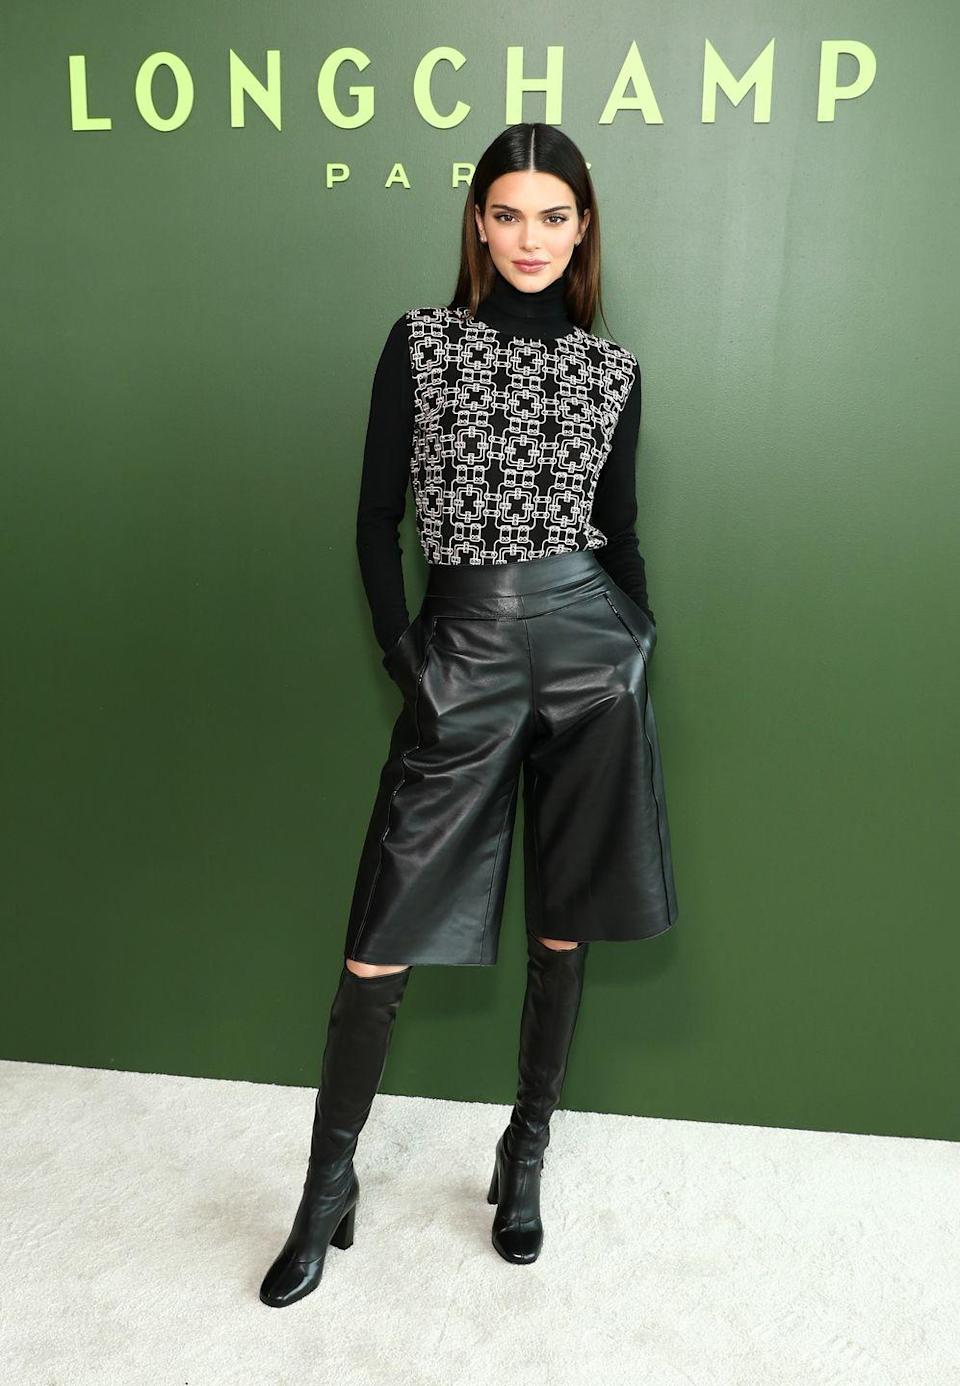 """<p>Model Kendall Jenner attended Longchamp's AW2o show in New York wearing over-the-knee boots and a patterned turtle neck.</p><p>The 24-year-old successfully nailed one of the trickiest trends out there right now, leather <a href=""""https://www.elle.com/uk/fashion/articles/g18182/leather-shorts/"""" rel=""""nofollow noopener"""" target=""""_blank"""" data-ylk=""""slk:bermuda shorts"""" class=""""link rapid-noclick-resp"""">bermuda shorts</a>.</p><p><a class=""""link rapid-noclick-resp"""" href=""""https://go.redirectingat.com?id=127X1599956&url=https%3A%2F%2Fwww.stories.com%2Fen_gbp%2Fclothing%2Fshorts%2Fproduct.leather-culotte-shorts-black.0814449001.html&sref=https%3A%2F%2Fwww.elle.com%2Fuk%2Ffashion%2Fcelebrity-style%2Farticles%2Fg2543%2Fkendall-jenner%2F"""" rel=""""nofollow noopener"""" target=""""_blank"""" data-ylk=""""slk:SHOP LEATHER BERMUDA SHORTS"""">SHOP LEATHER BERMUDA SHORTS</a></p>"""